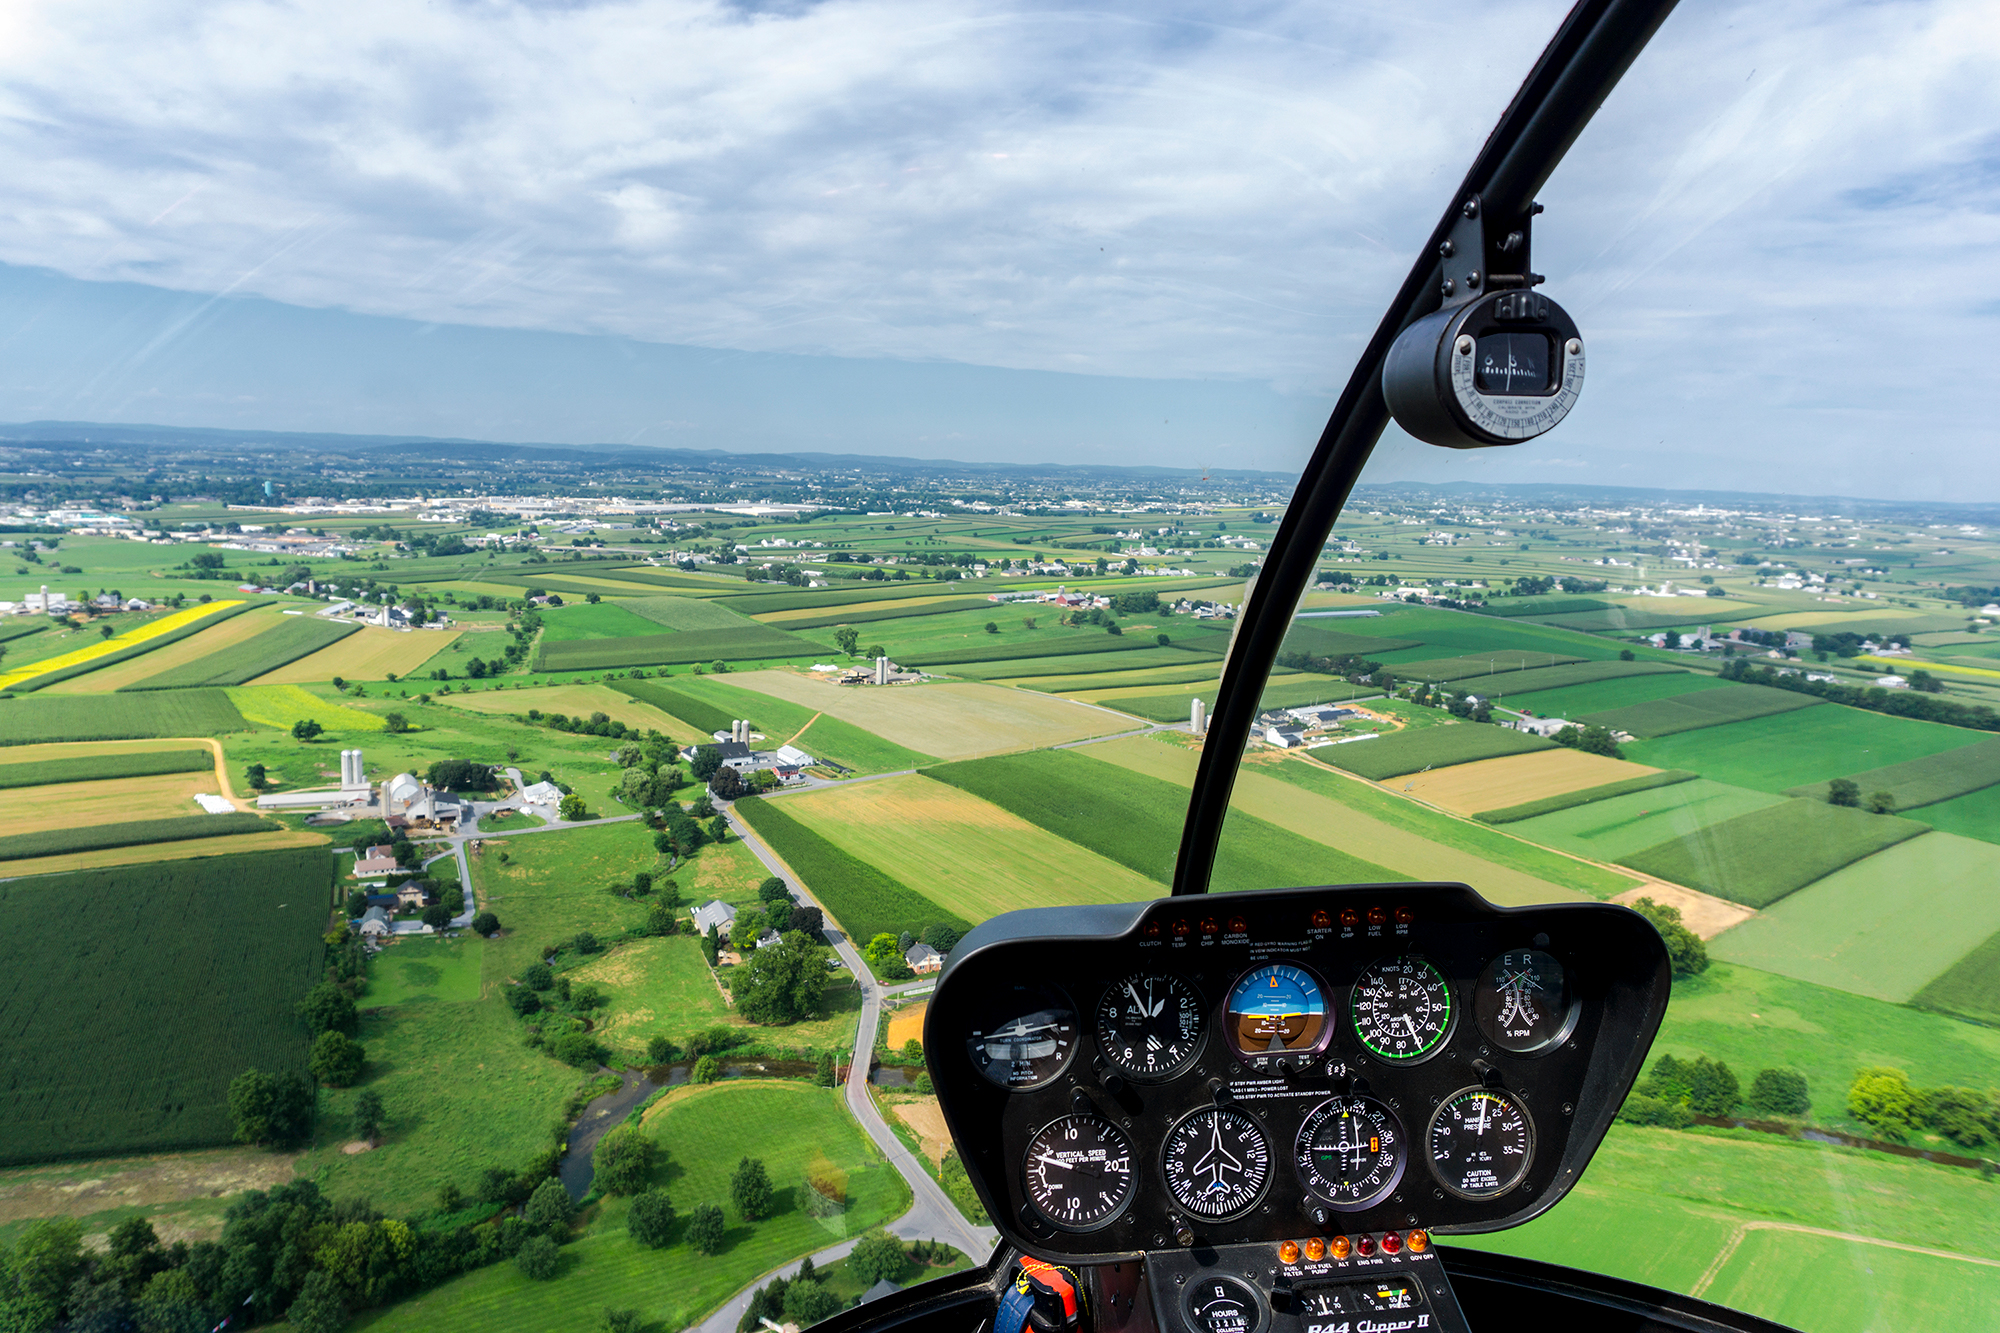 Smoketown Helicopters - Dash View Countryside